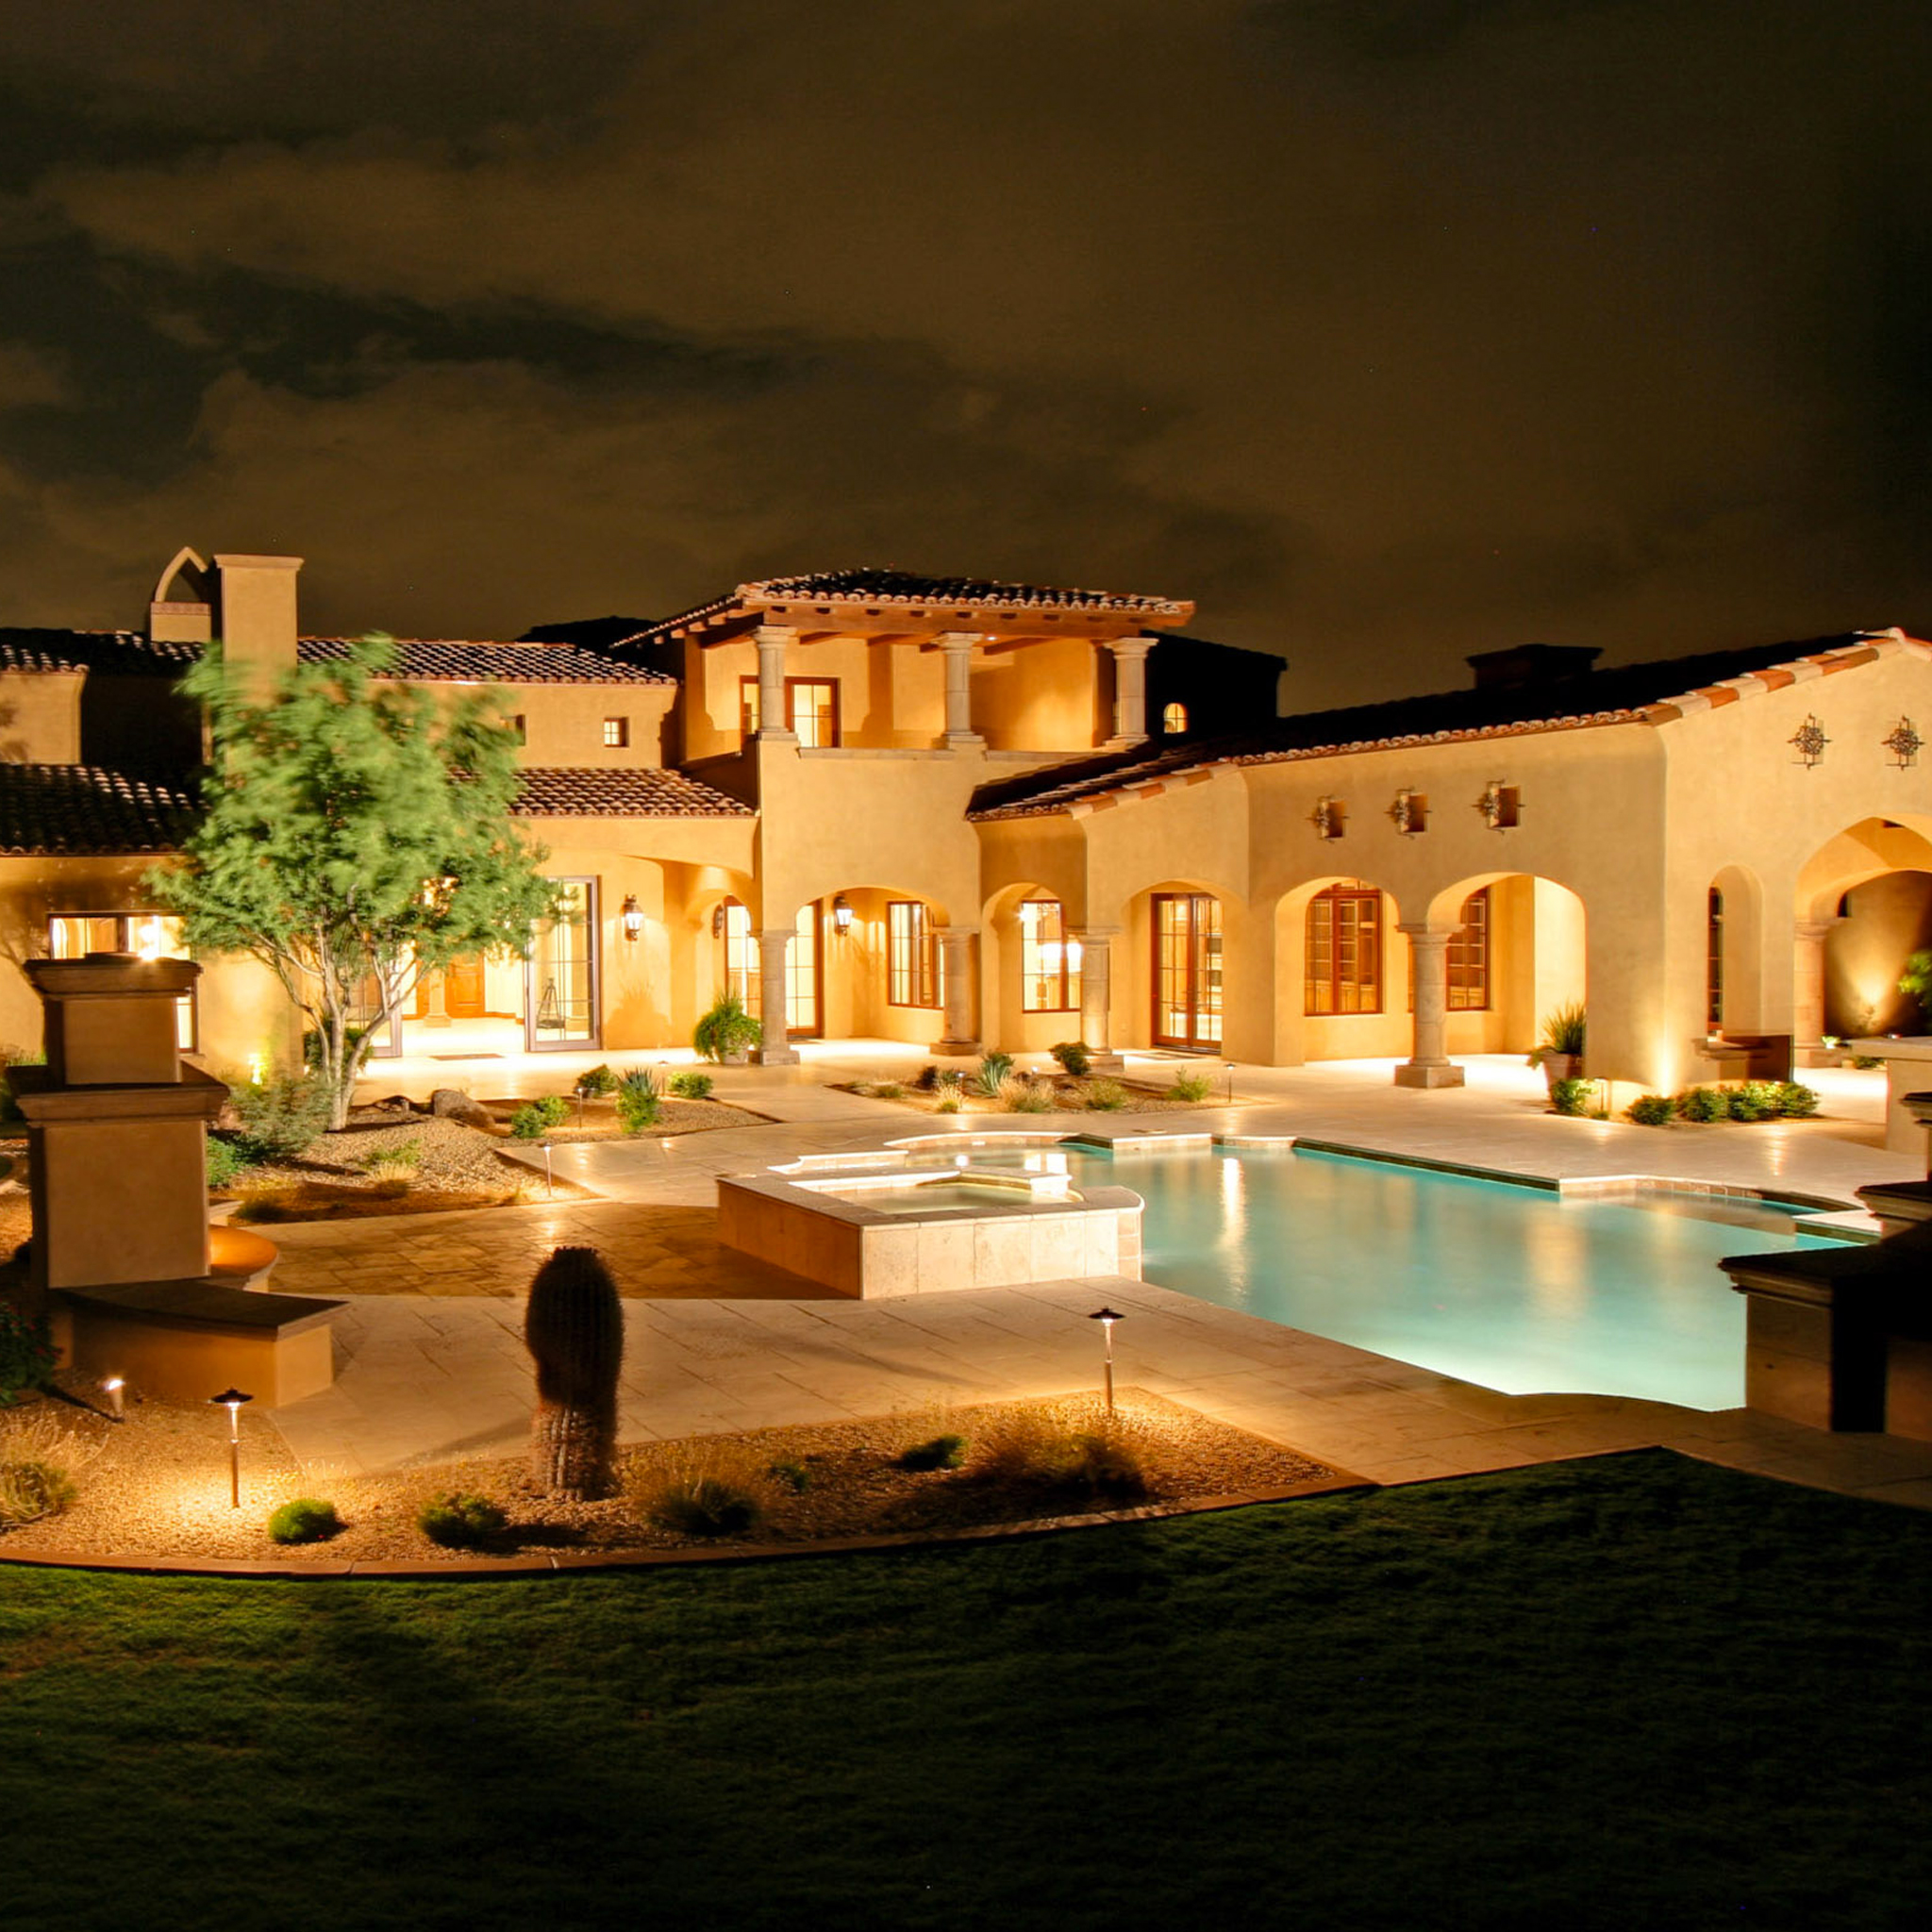 Luxury House 3Wallpapers iPad Retina Luxury House   iPad Retina